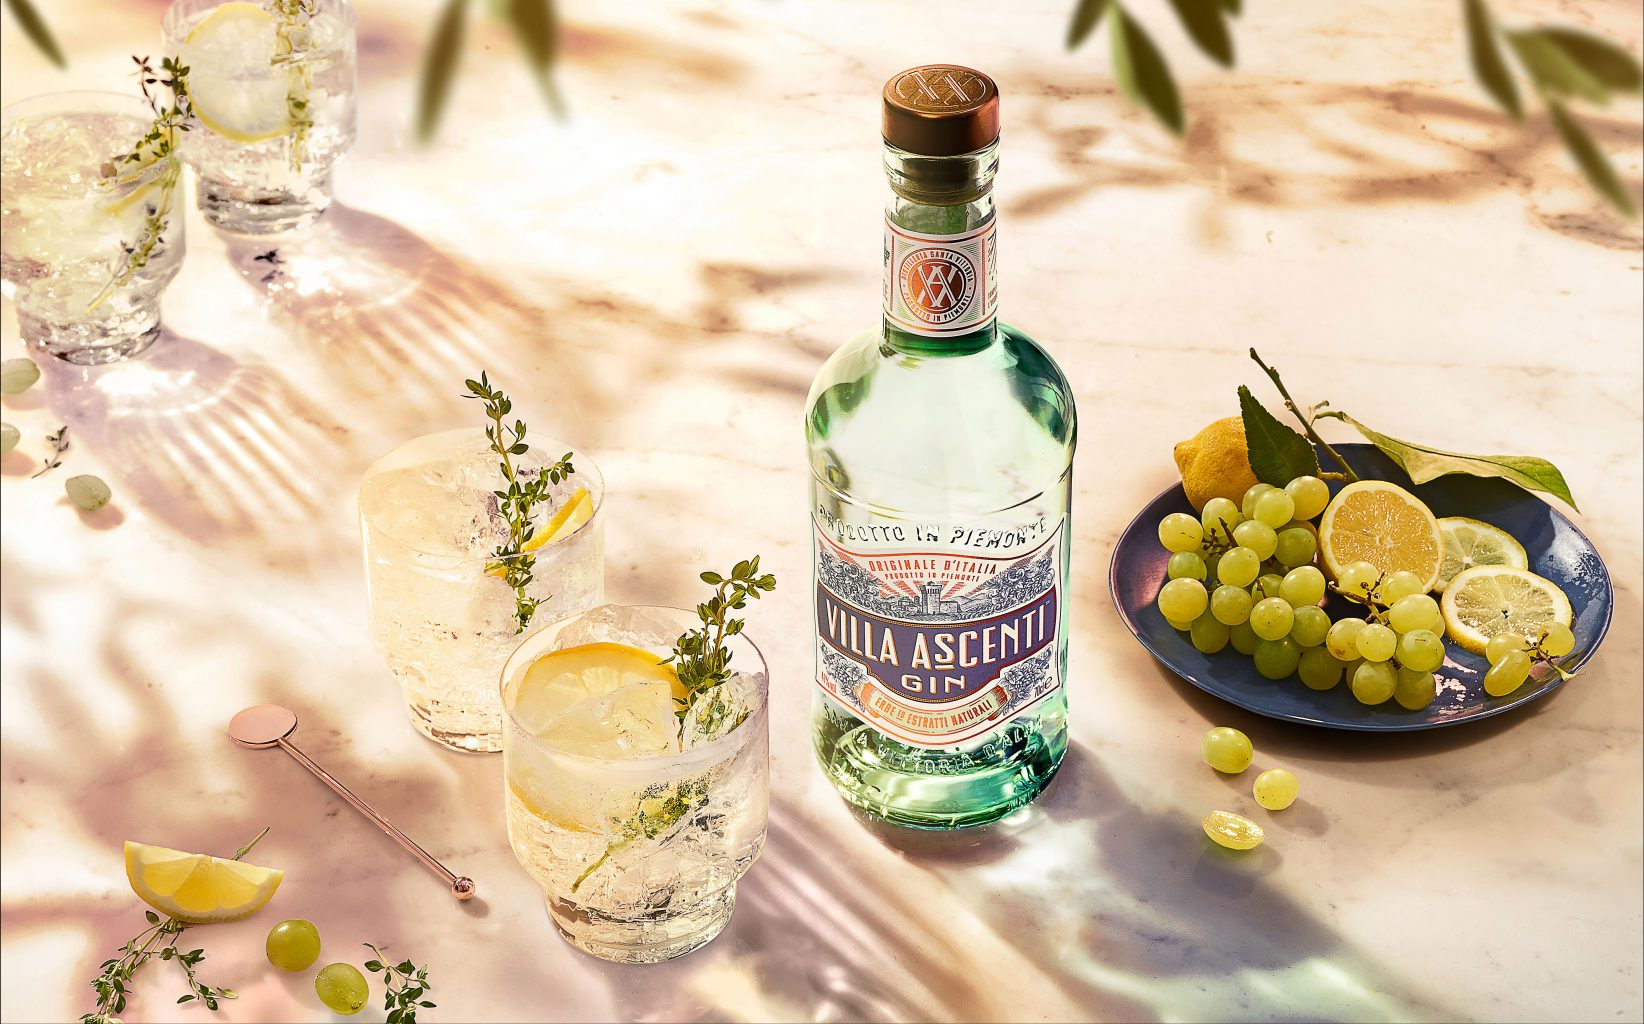 Villa Ascenti and Tonic with Lemon LANDSCAPE | Villa Ascenti Gin